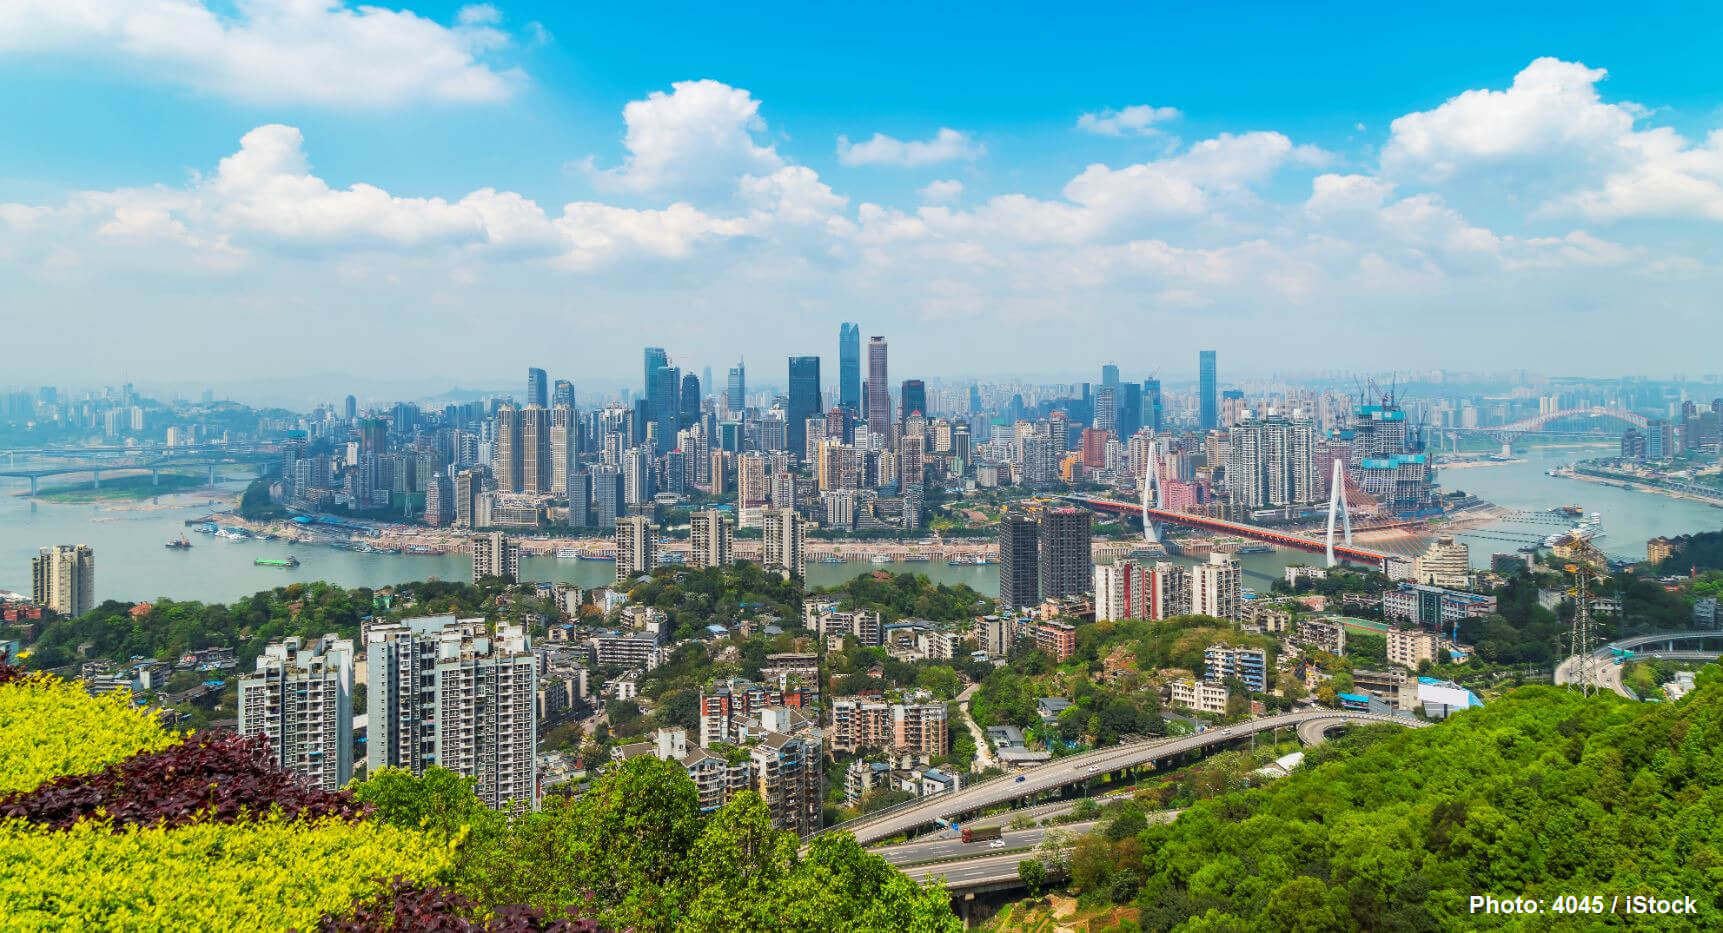 Internship Program in Chongqing